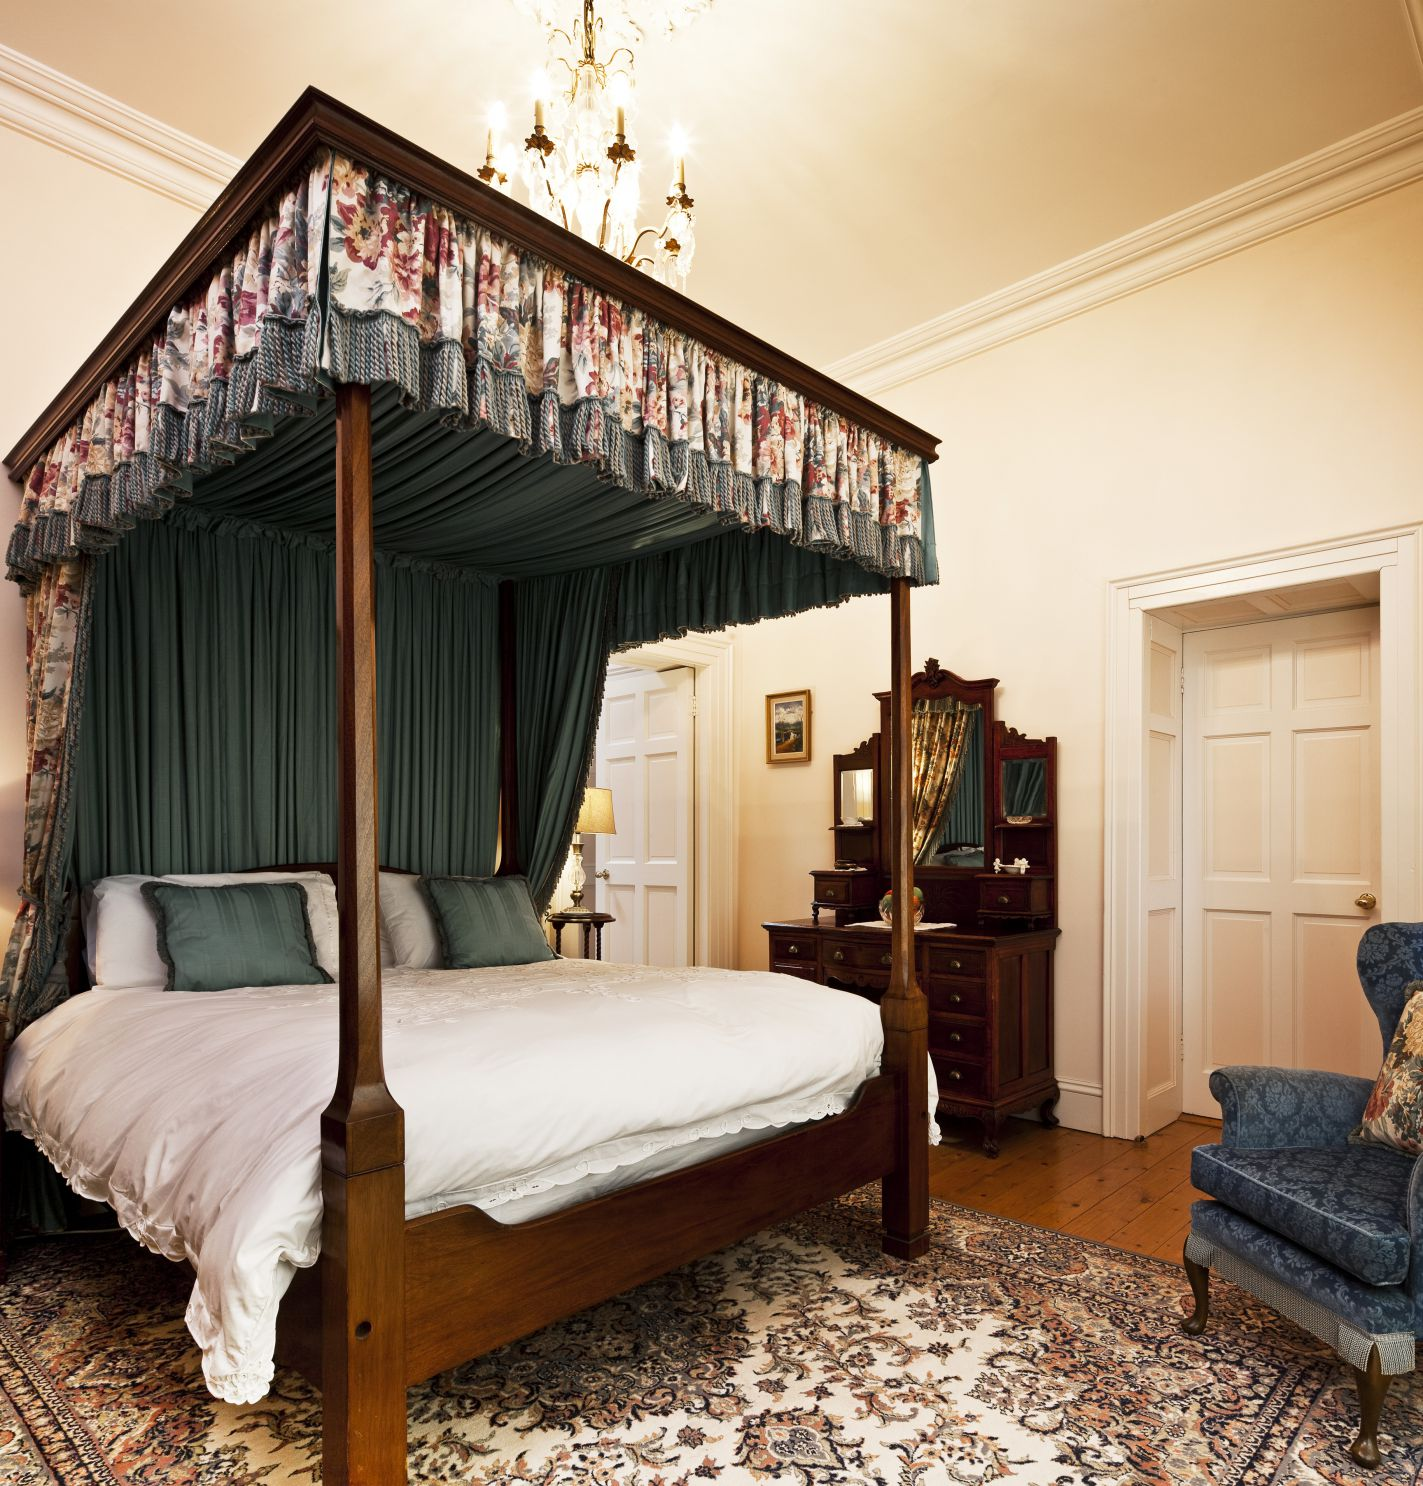 four poster bed - luxury castle accommodation